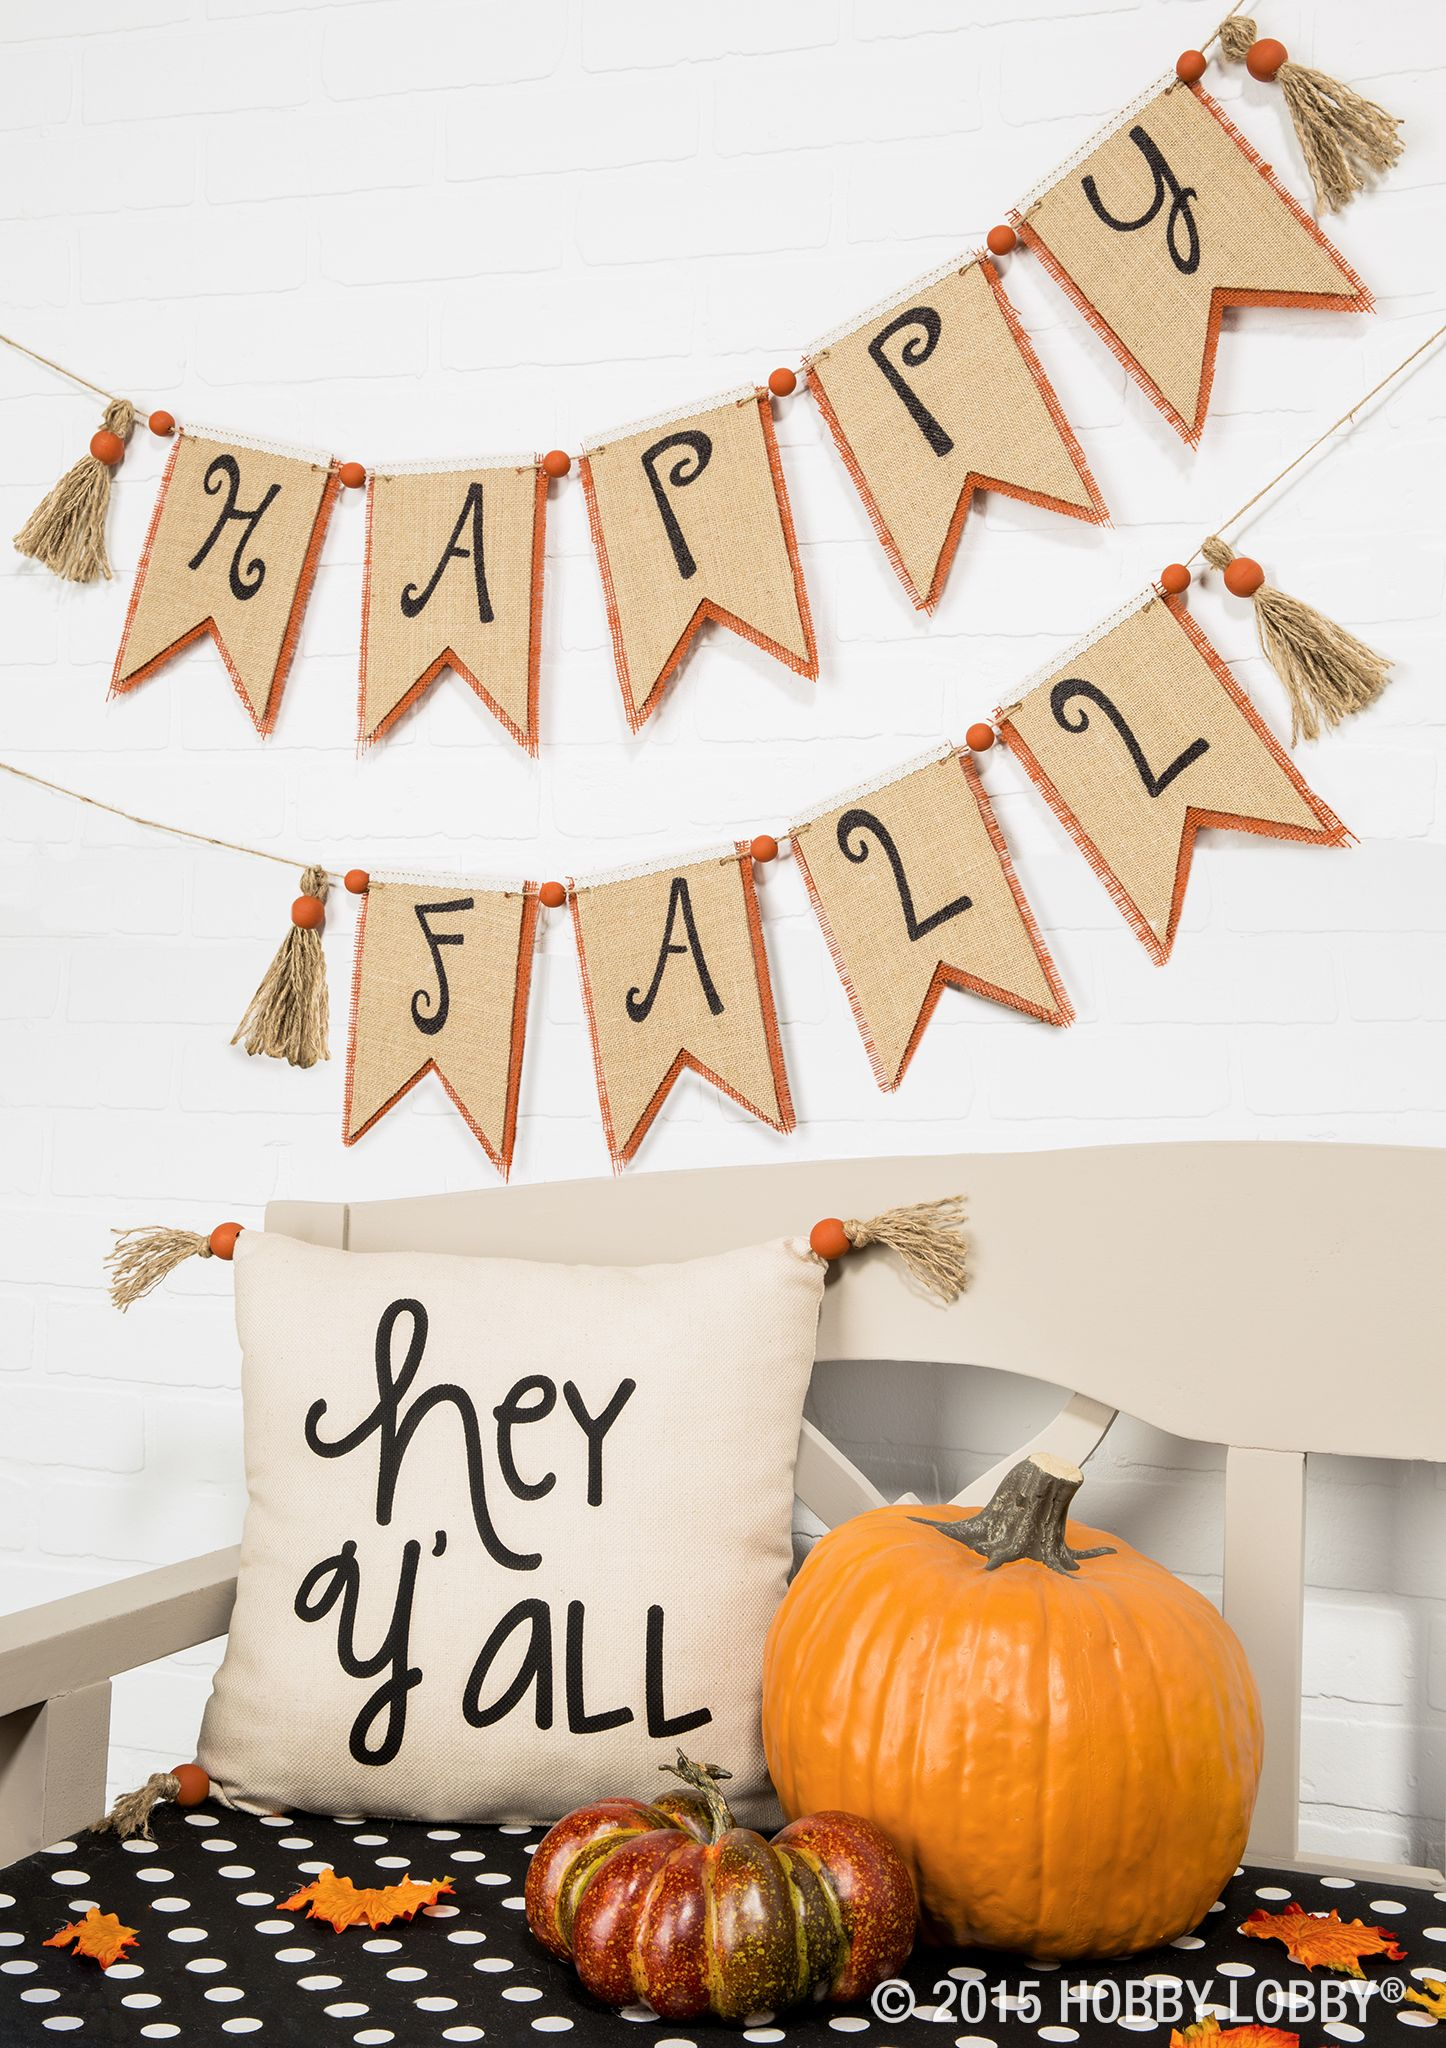 happy fall y all welcome fall with a burlap banner pretty tassels